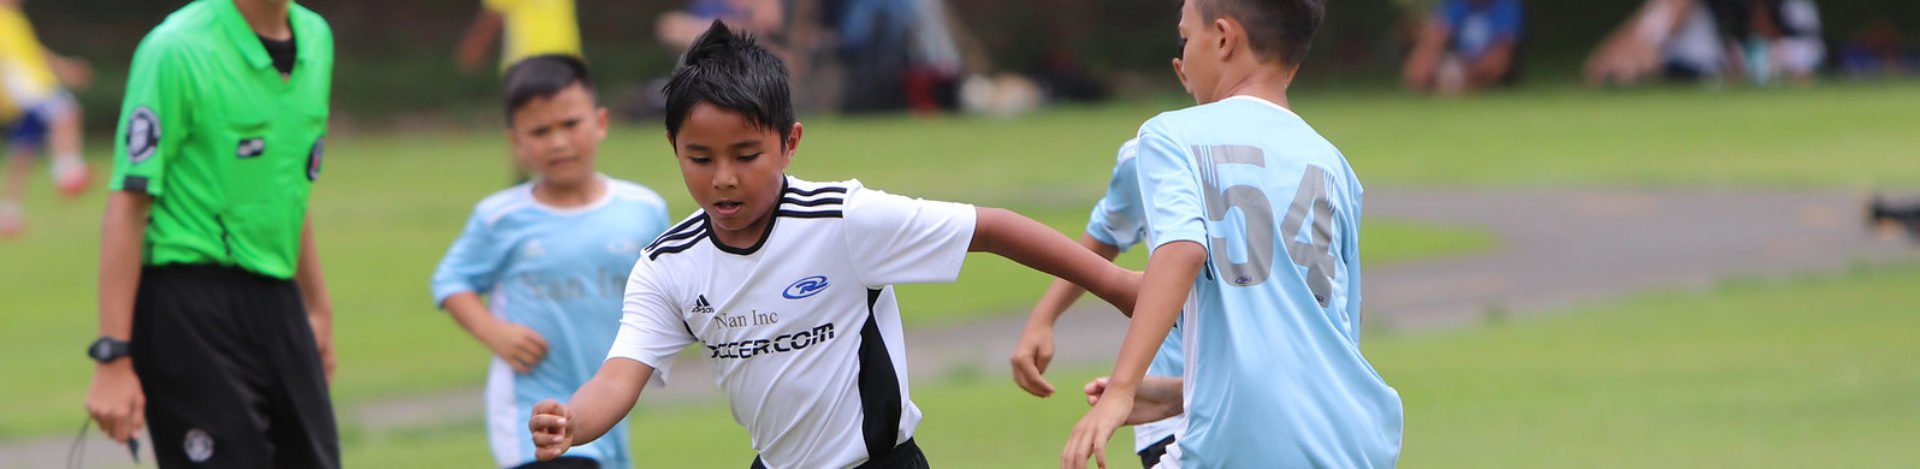 Big Island Rush Soccer Club – Hilo, Hawaii